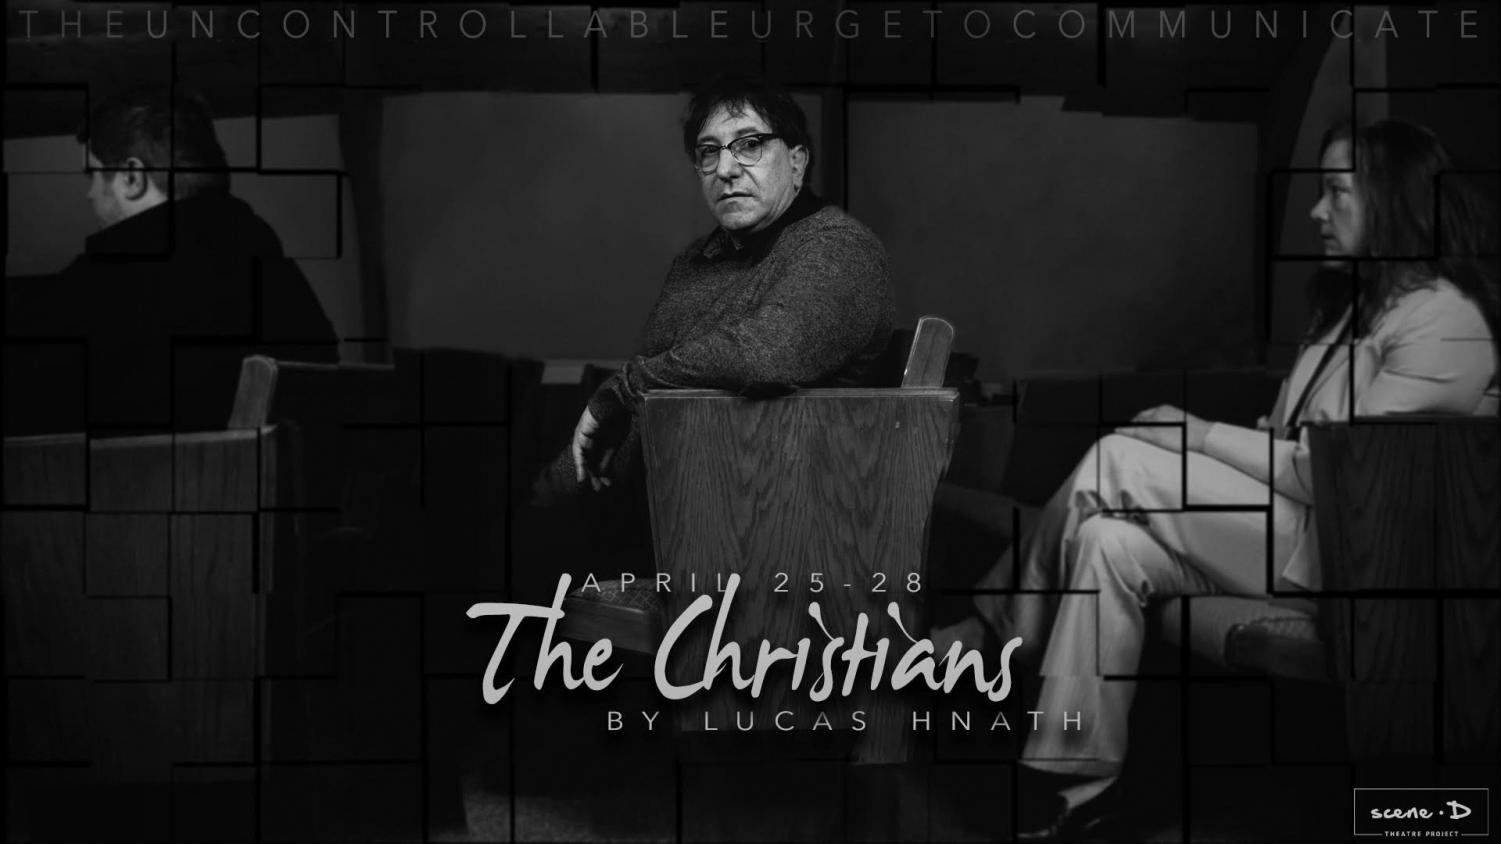 "Scene D, a local independent theatre project, presents its second full production ""The Christians"", which will be held at Rock & Bach Studios, located at 1509 Rainbow Dr., formerly Calvary Baptist Church. Performances will take place from April 25-28 at 7 p.m."